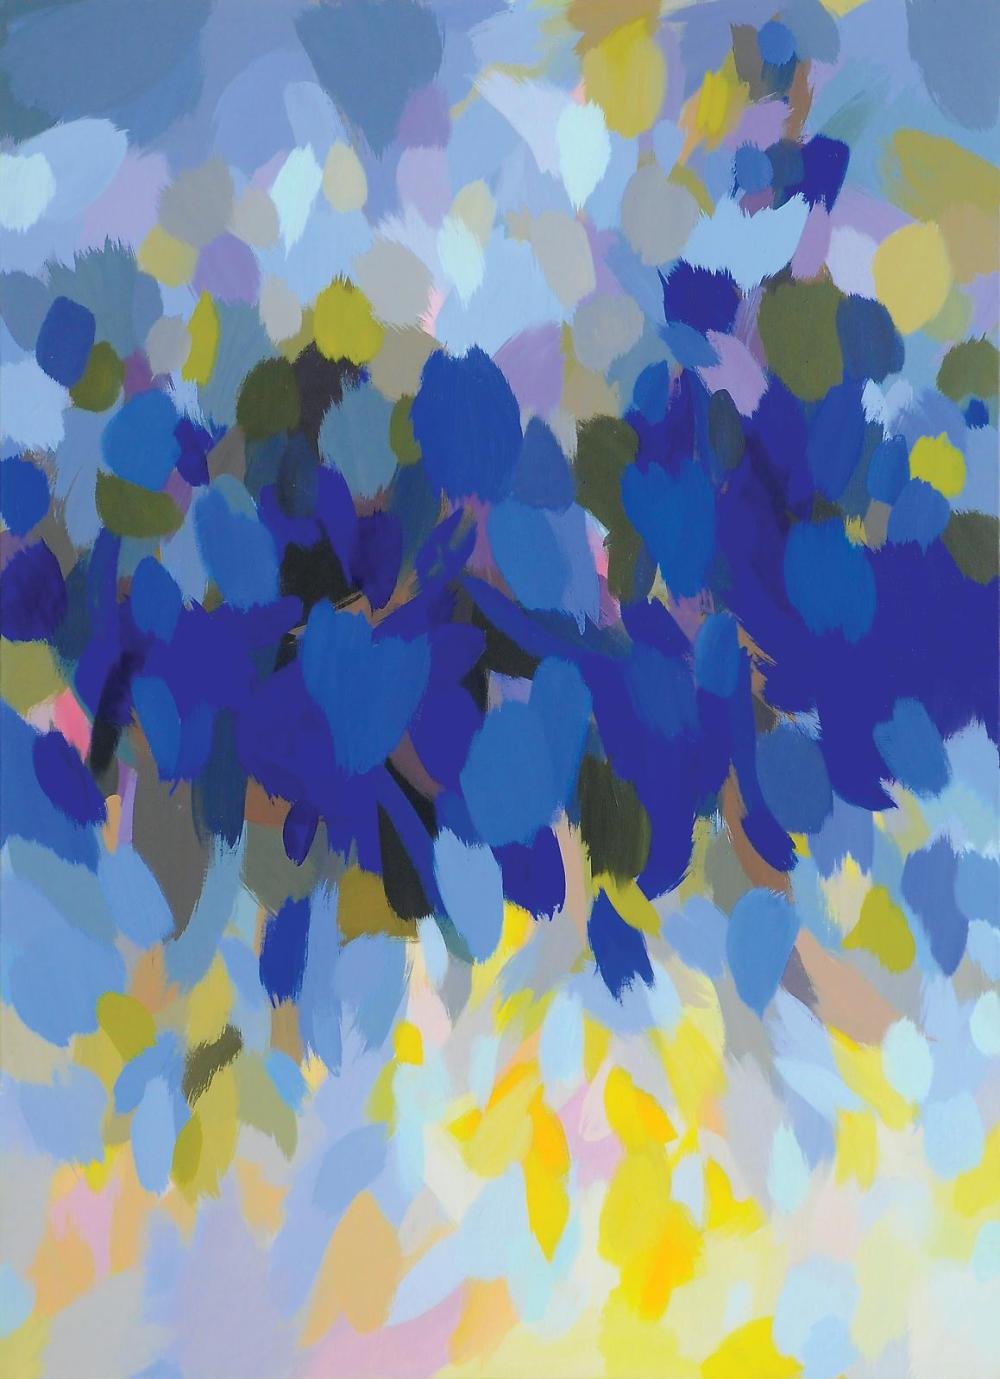 Samia Halaby, Blue Landscape, 2013, Acrylic on Linen Canvas,167.5 x 122 cm. Courtesy: Ayyam Gallery